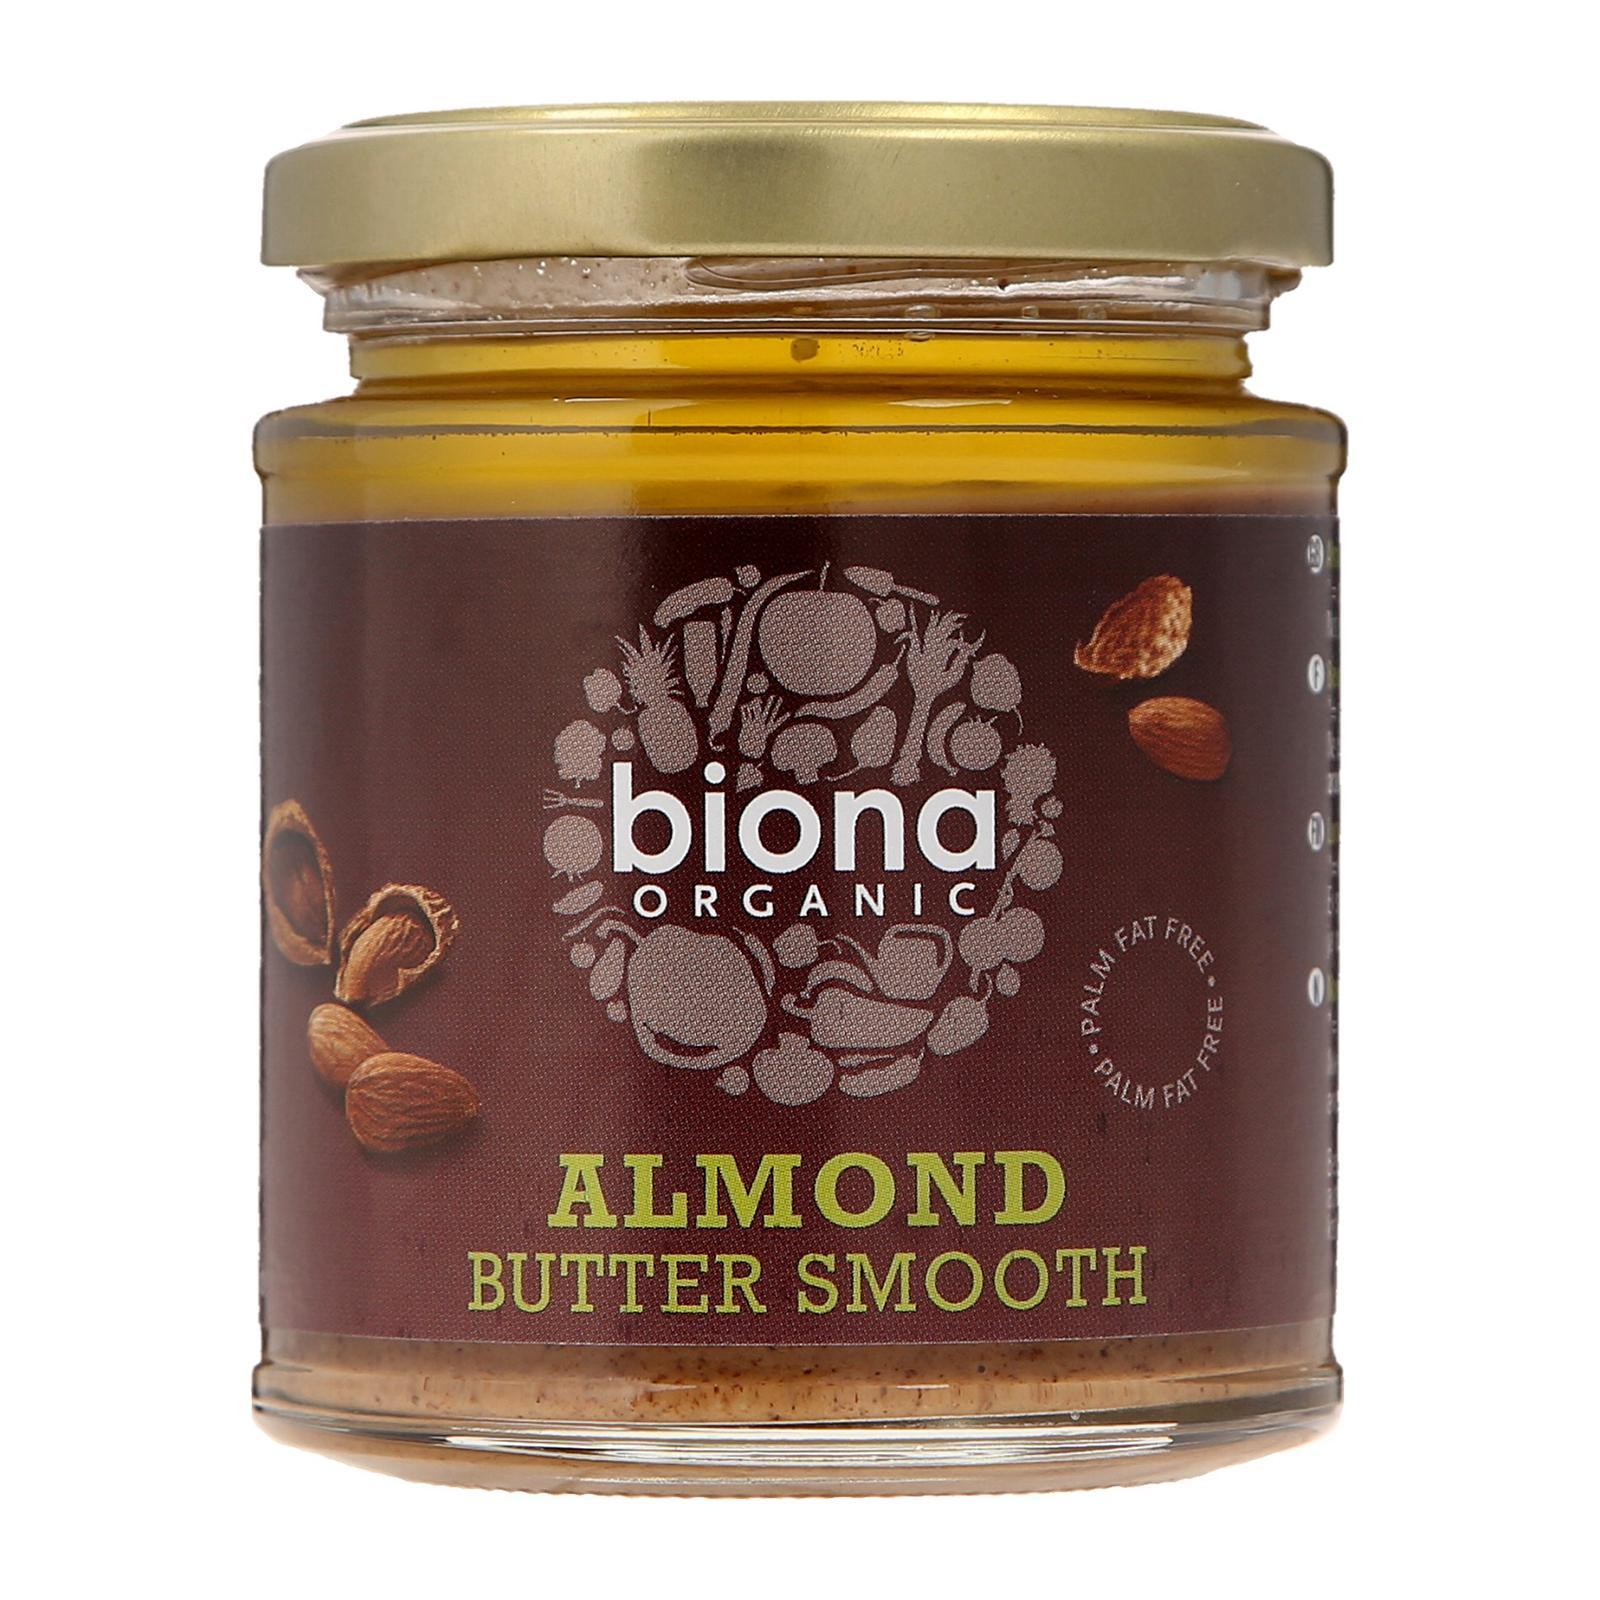 Biona Organic Almond Butter - Smooth - By Wholesome Harvest